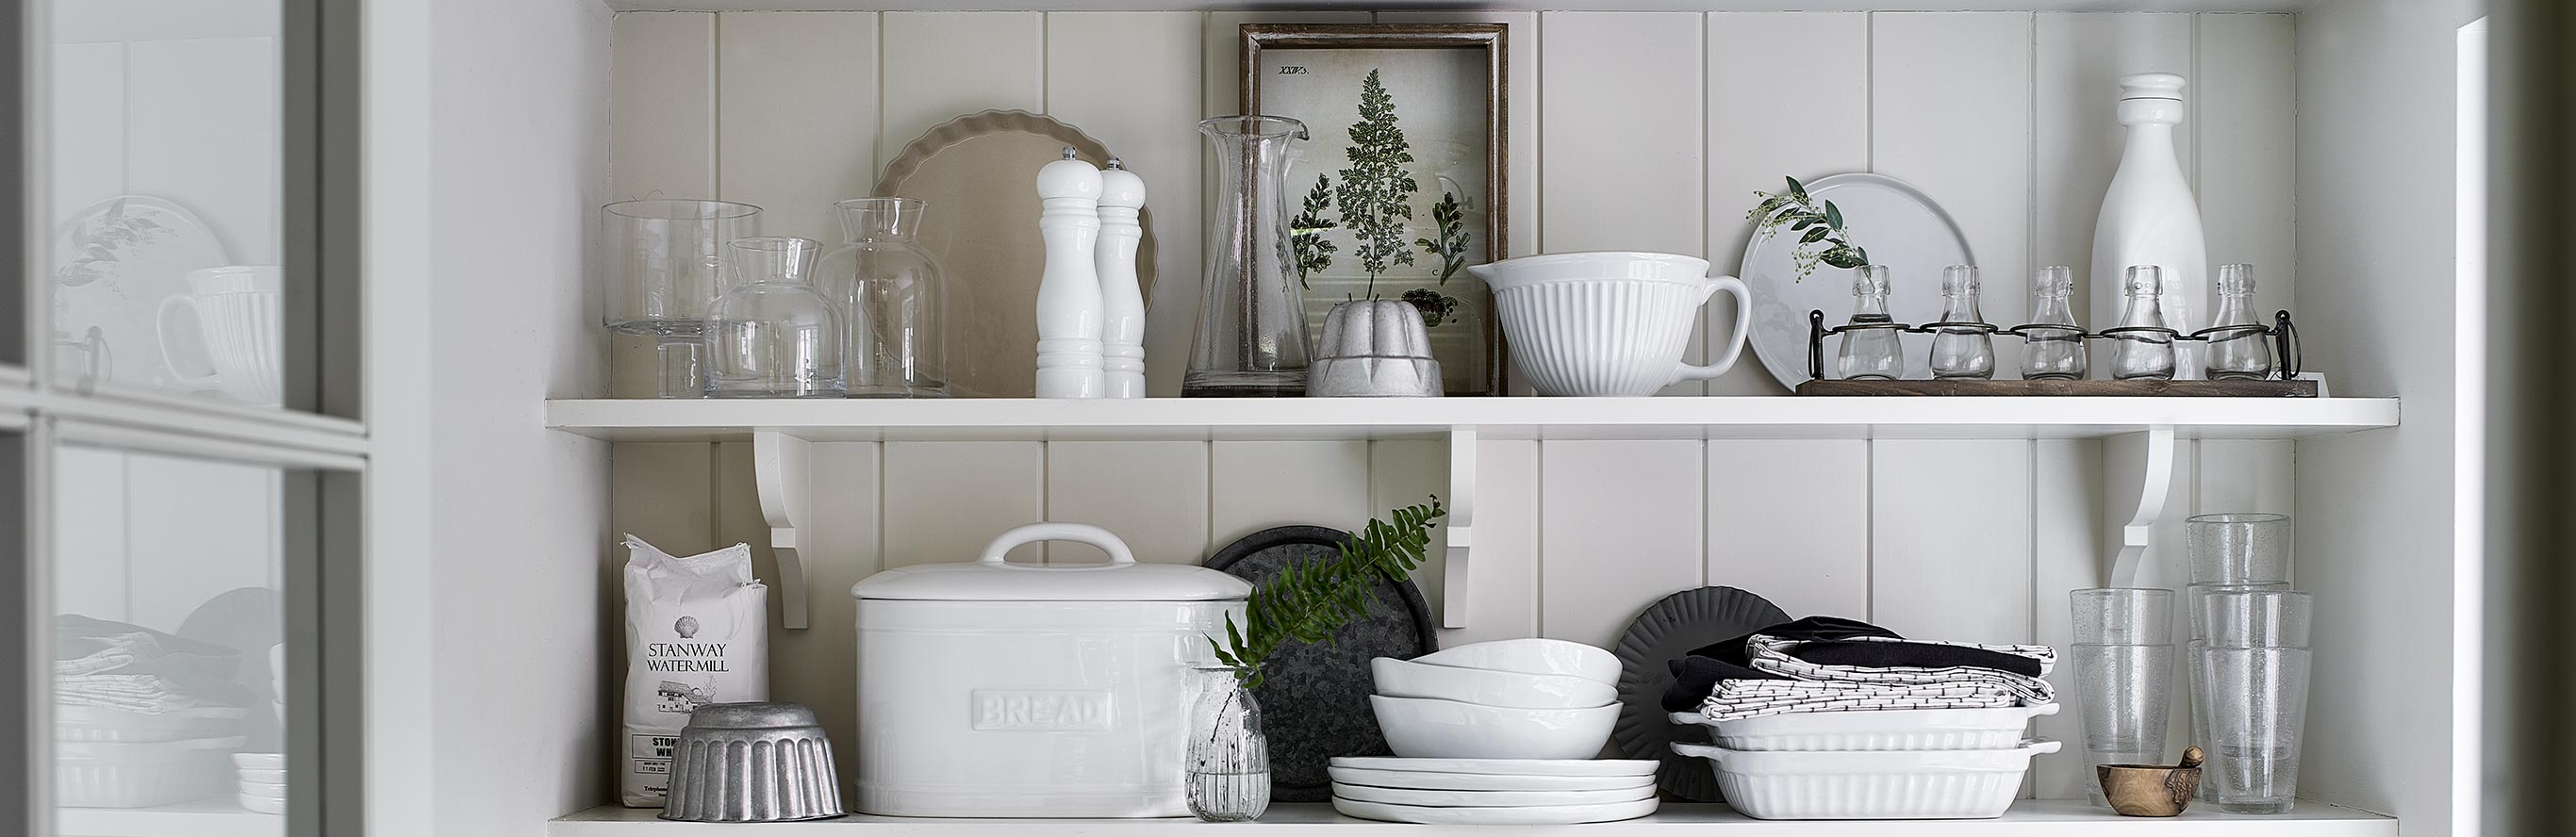 Click for beautiful Scandi Kitchen items